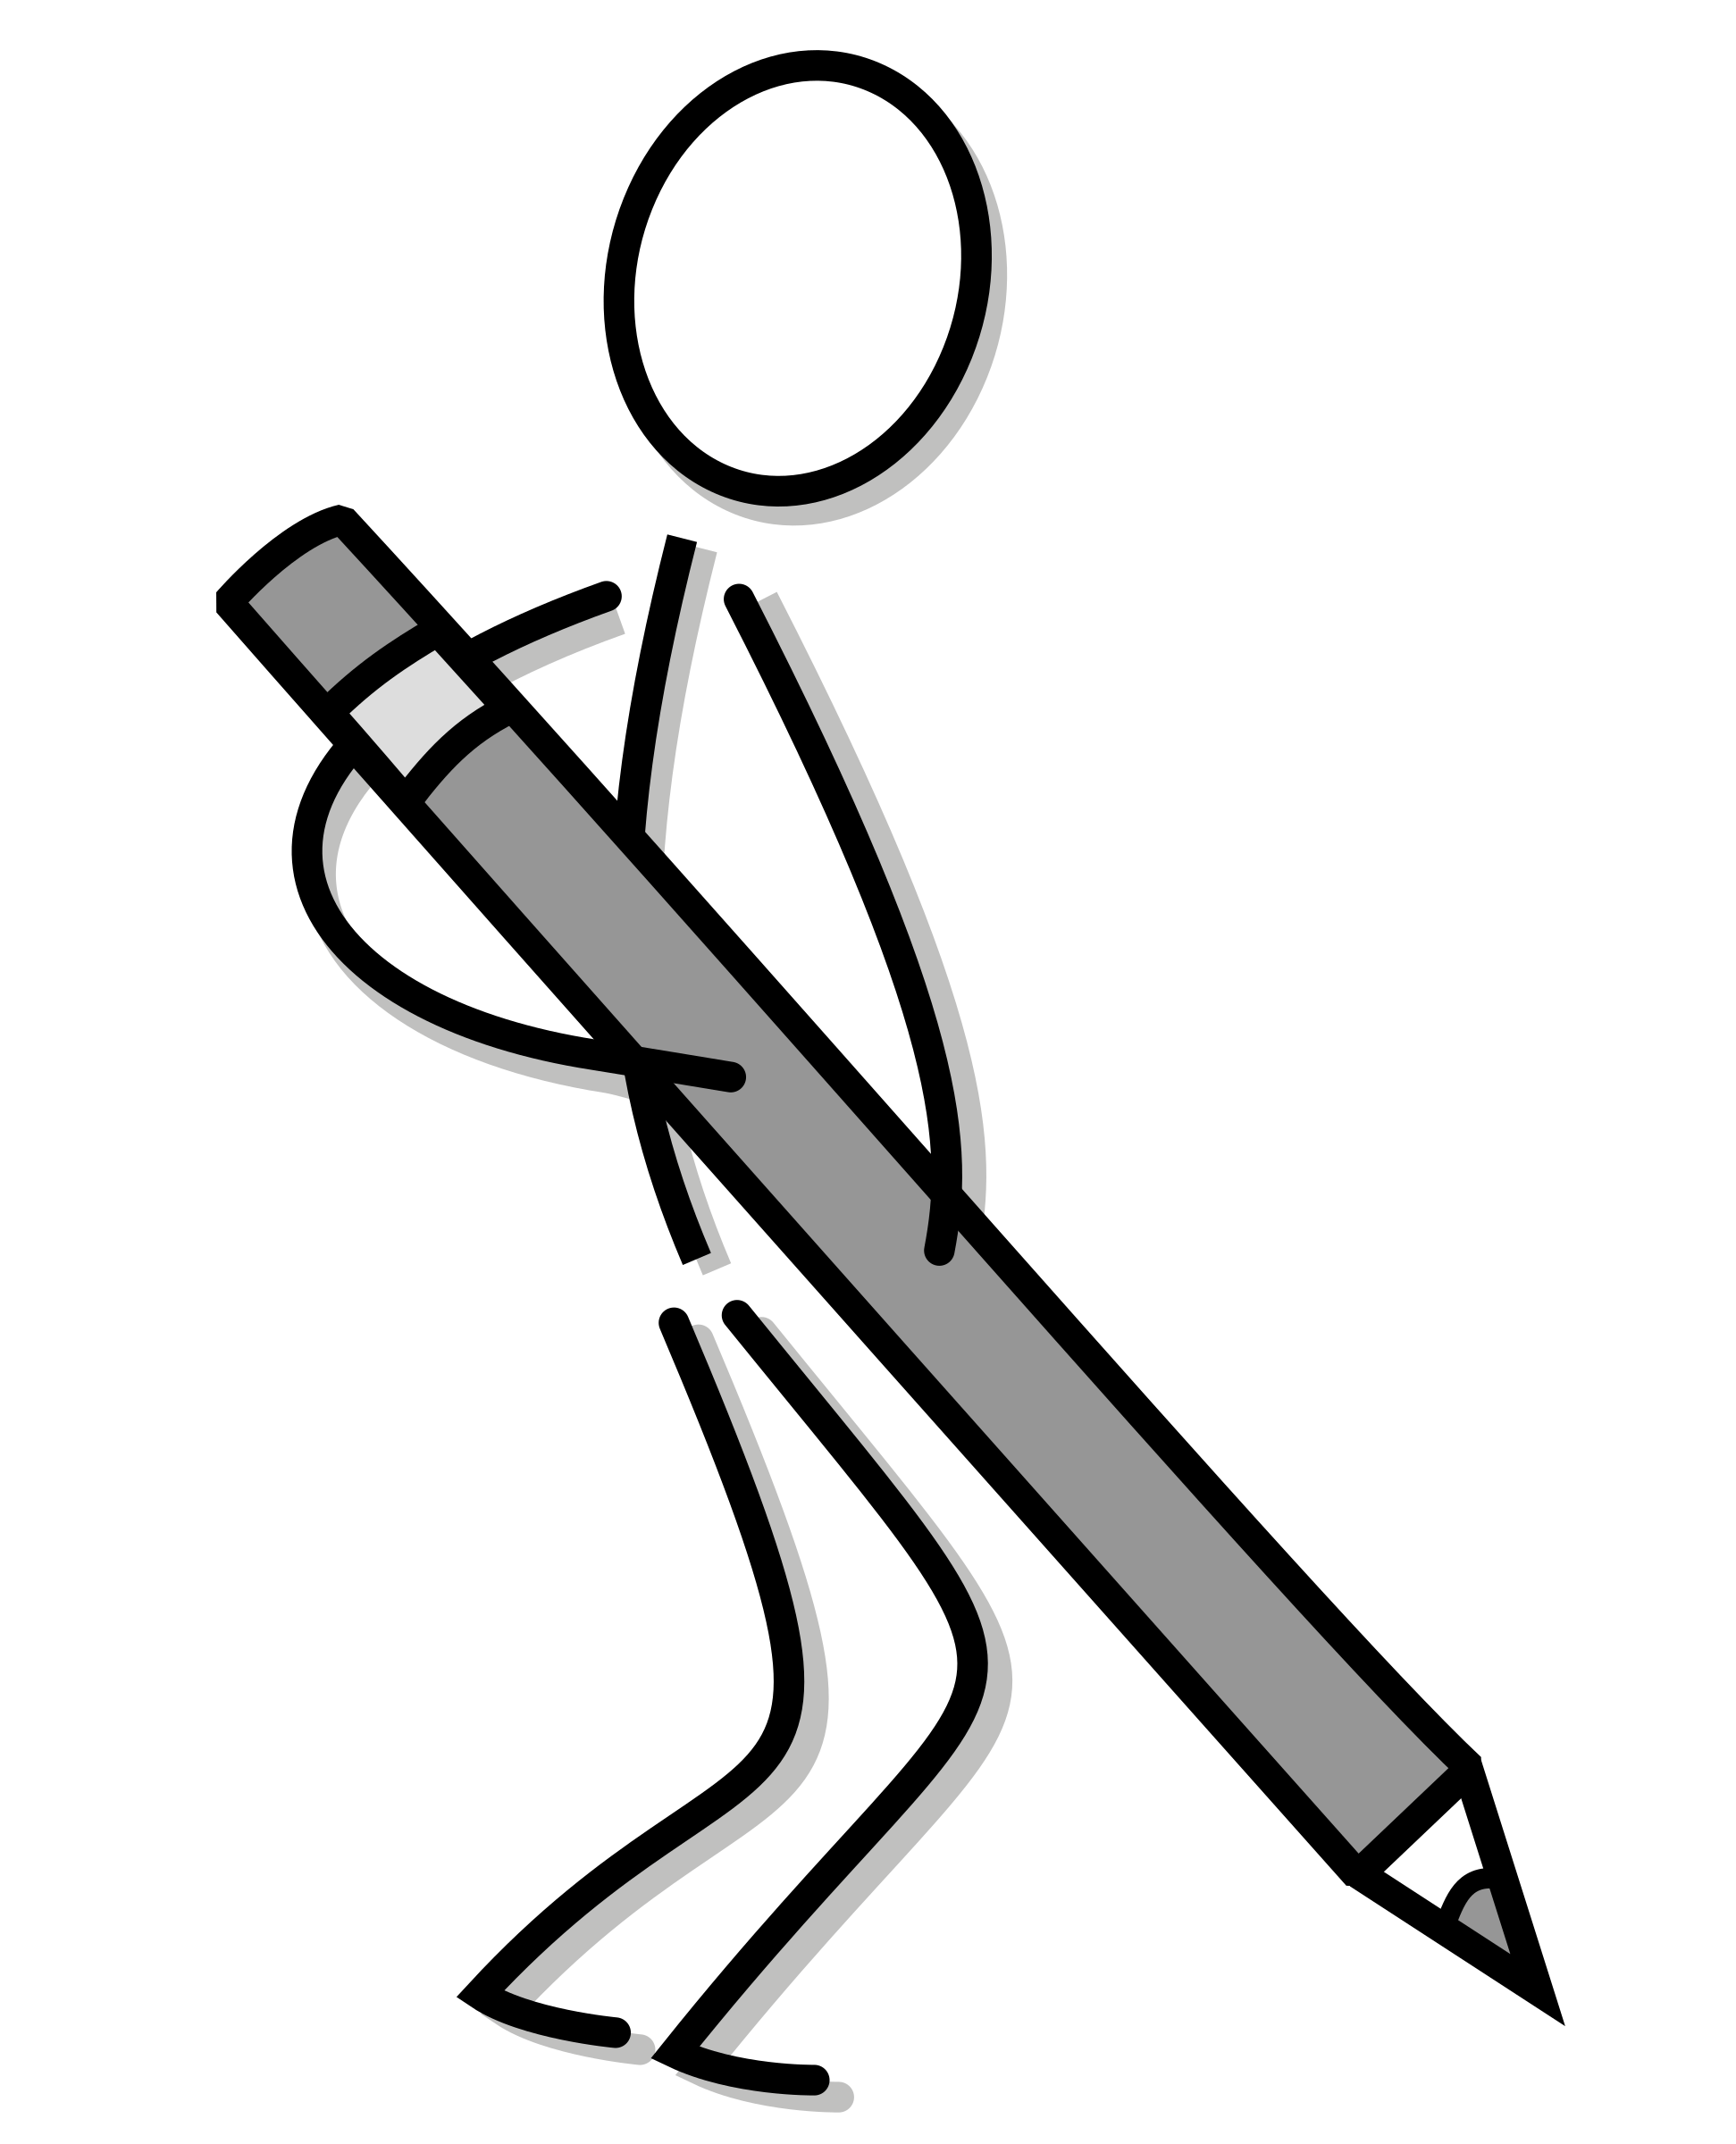 Stick Figure With Pencil Vector Clipart Image